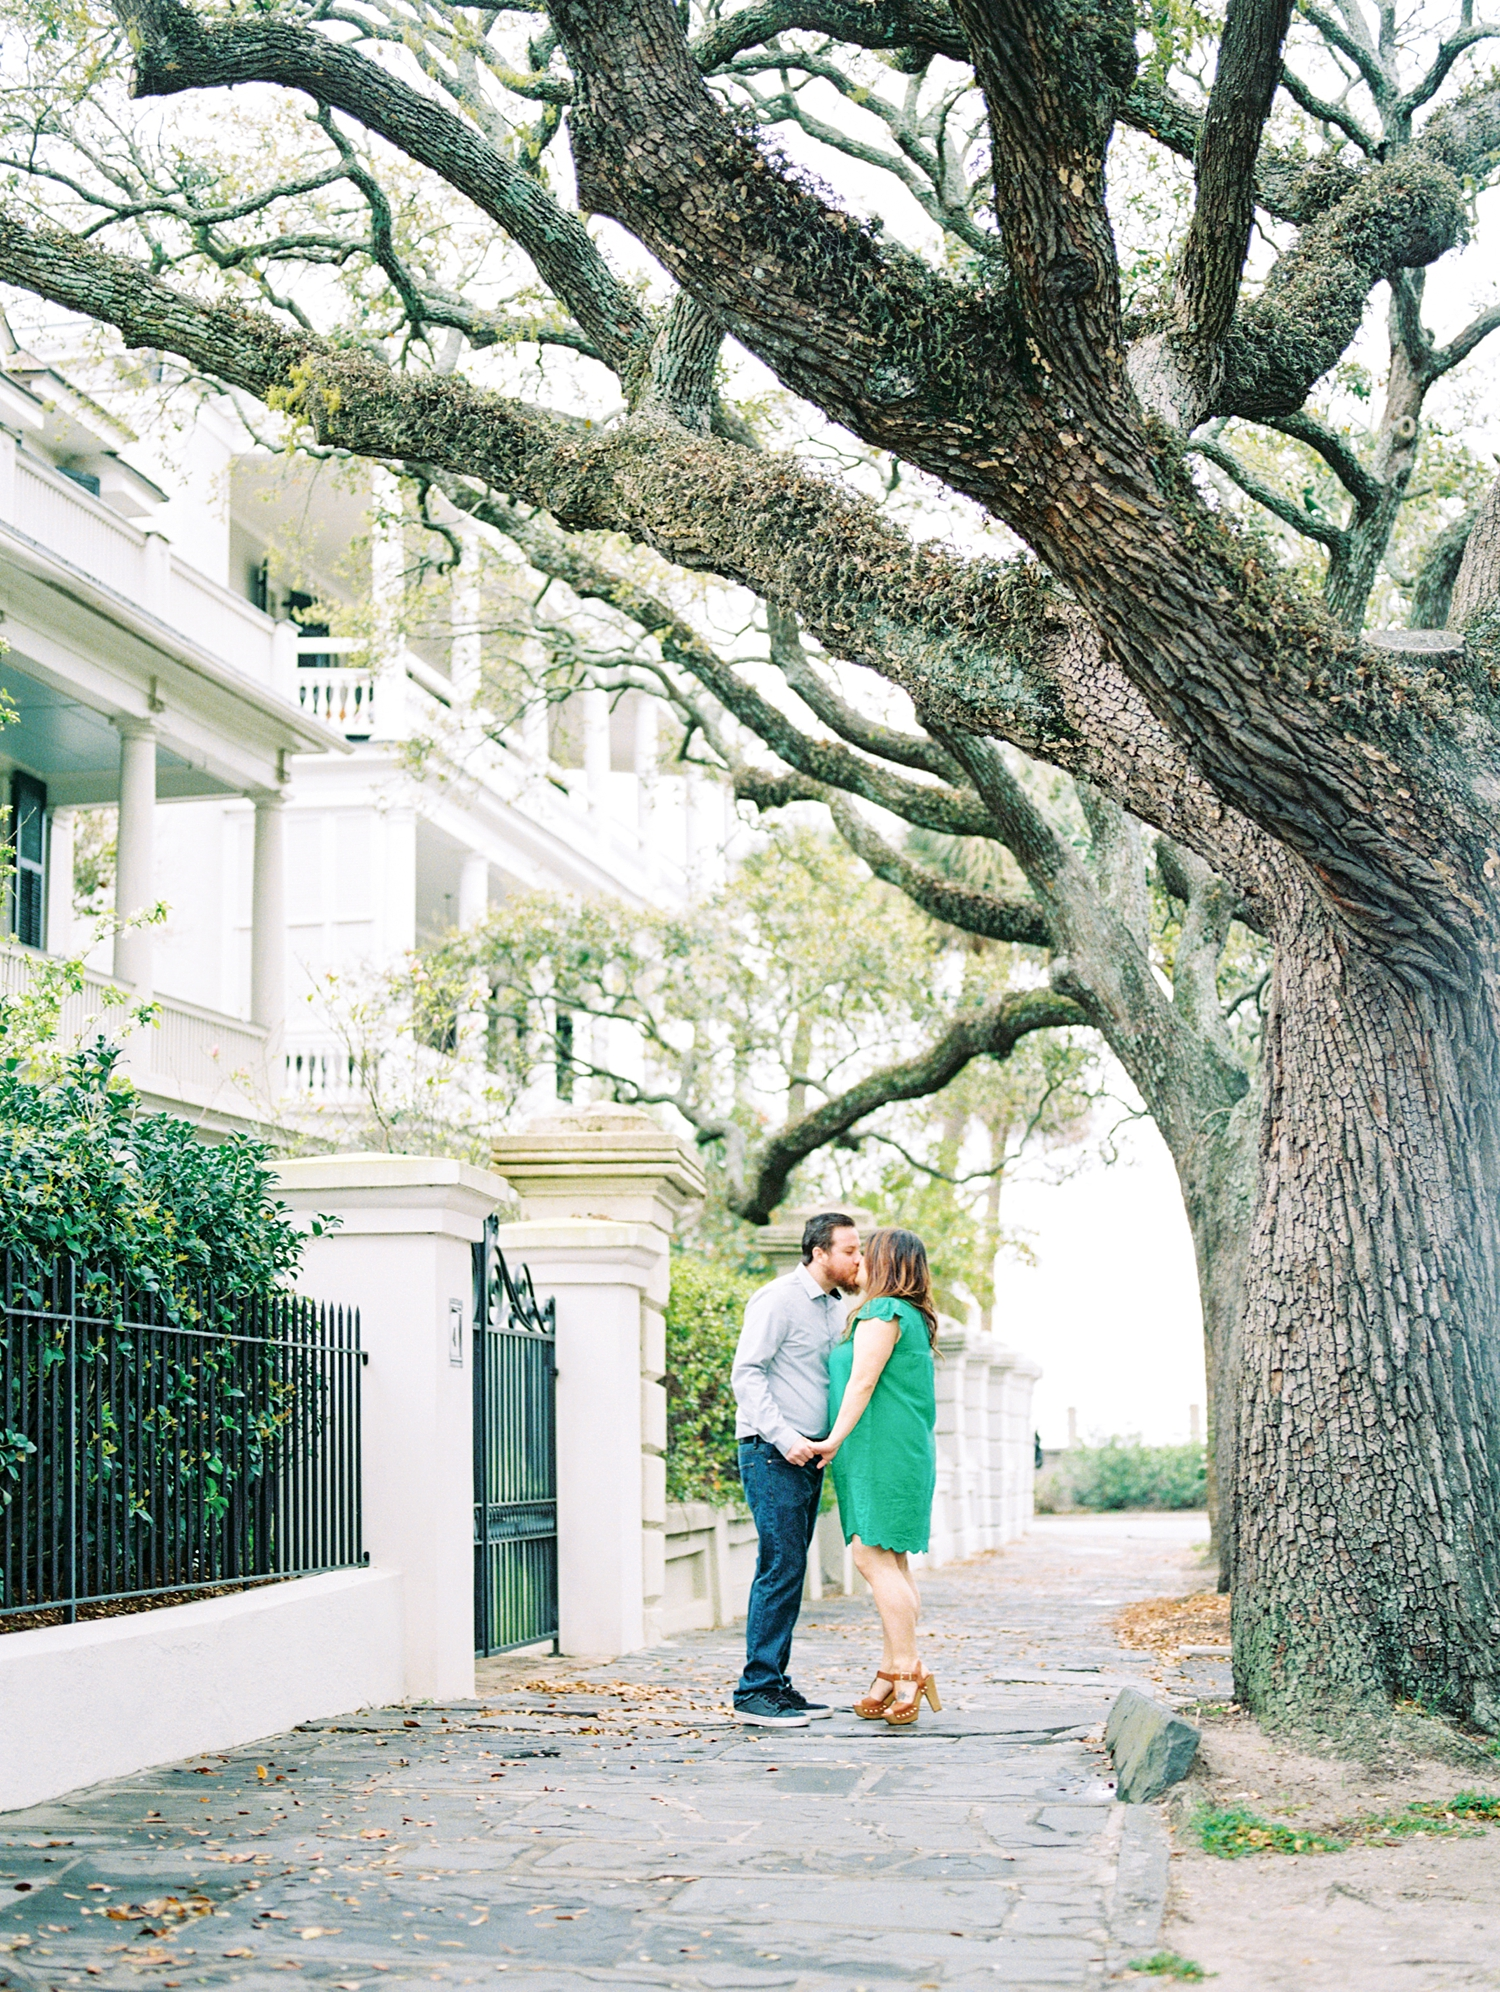 Lisa Silva Photography- Ponte Vedra Beach and Jacksonville, Florida Fine Art Film Wedding Photography- Engagement Session in Historic Charleston, South Carolina_0003.jpg